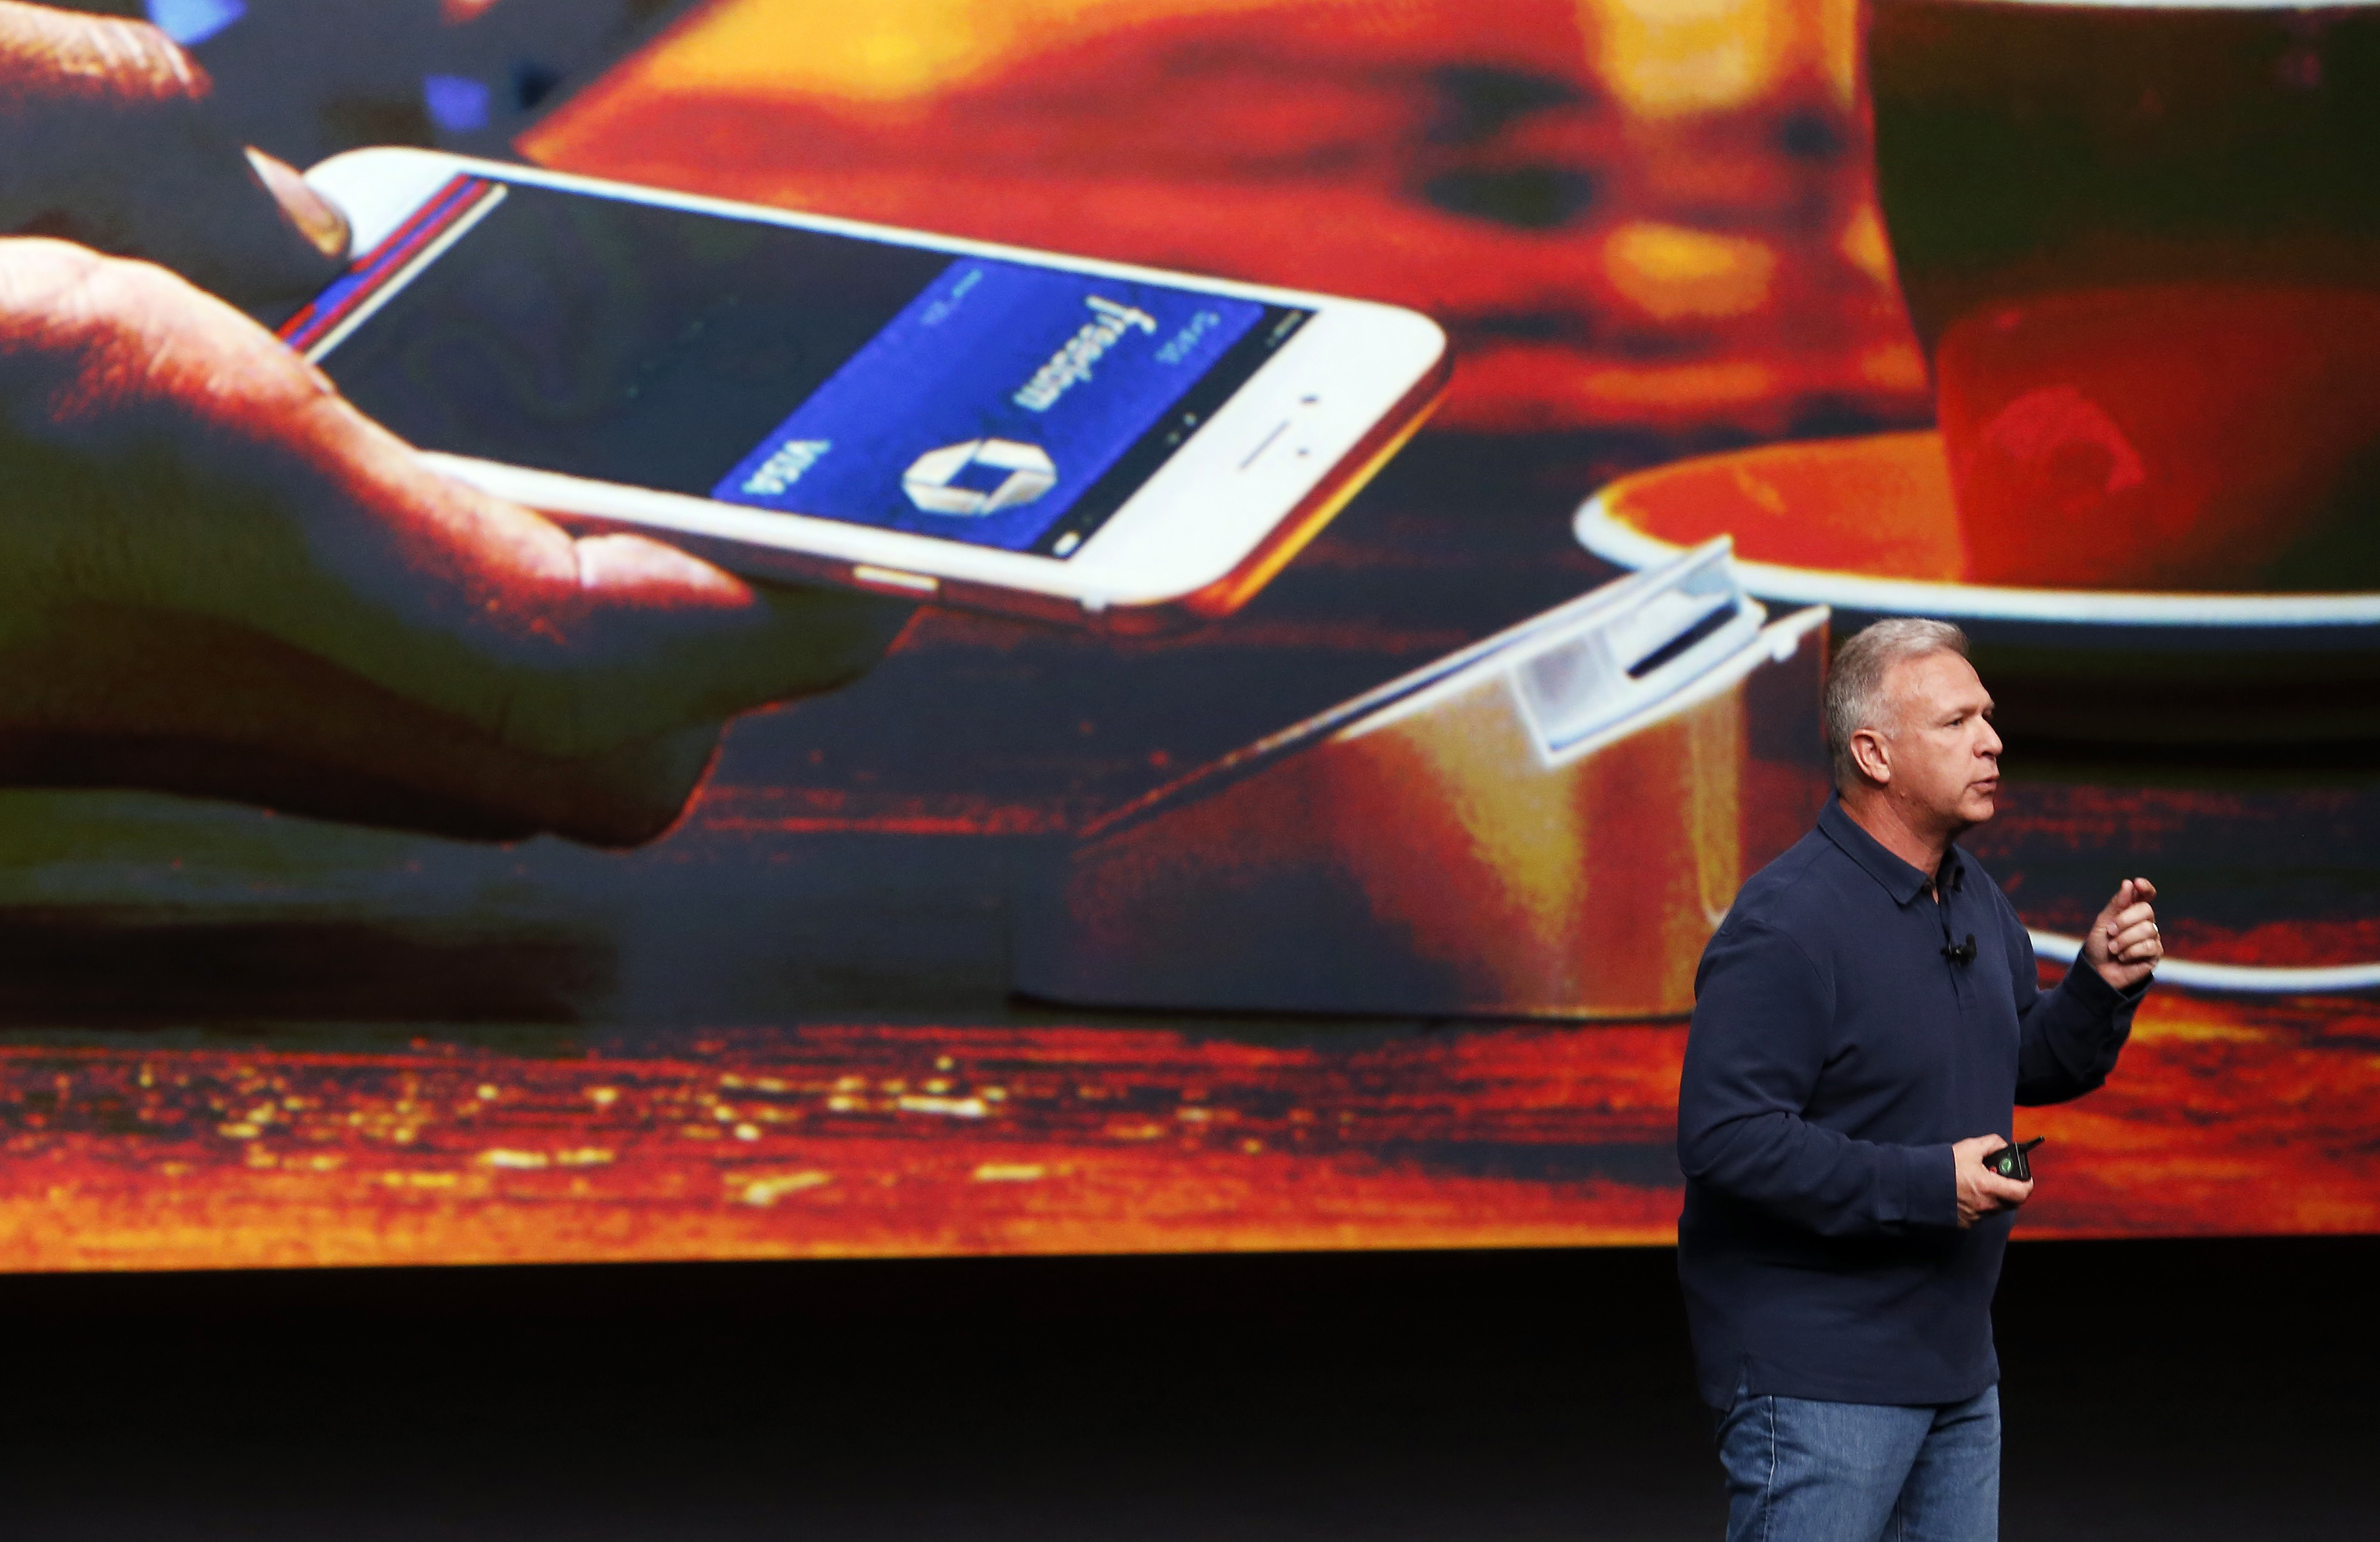 Phil Schiller discusses Apple Pay during a media event in San Francisco